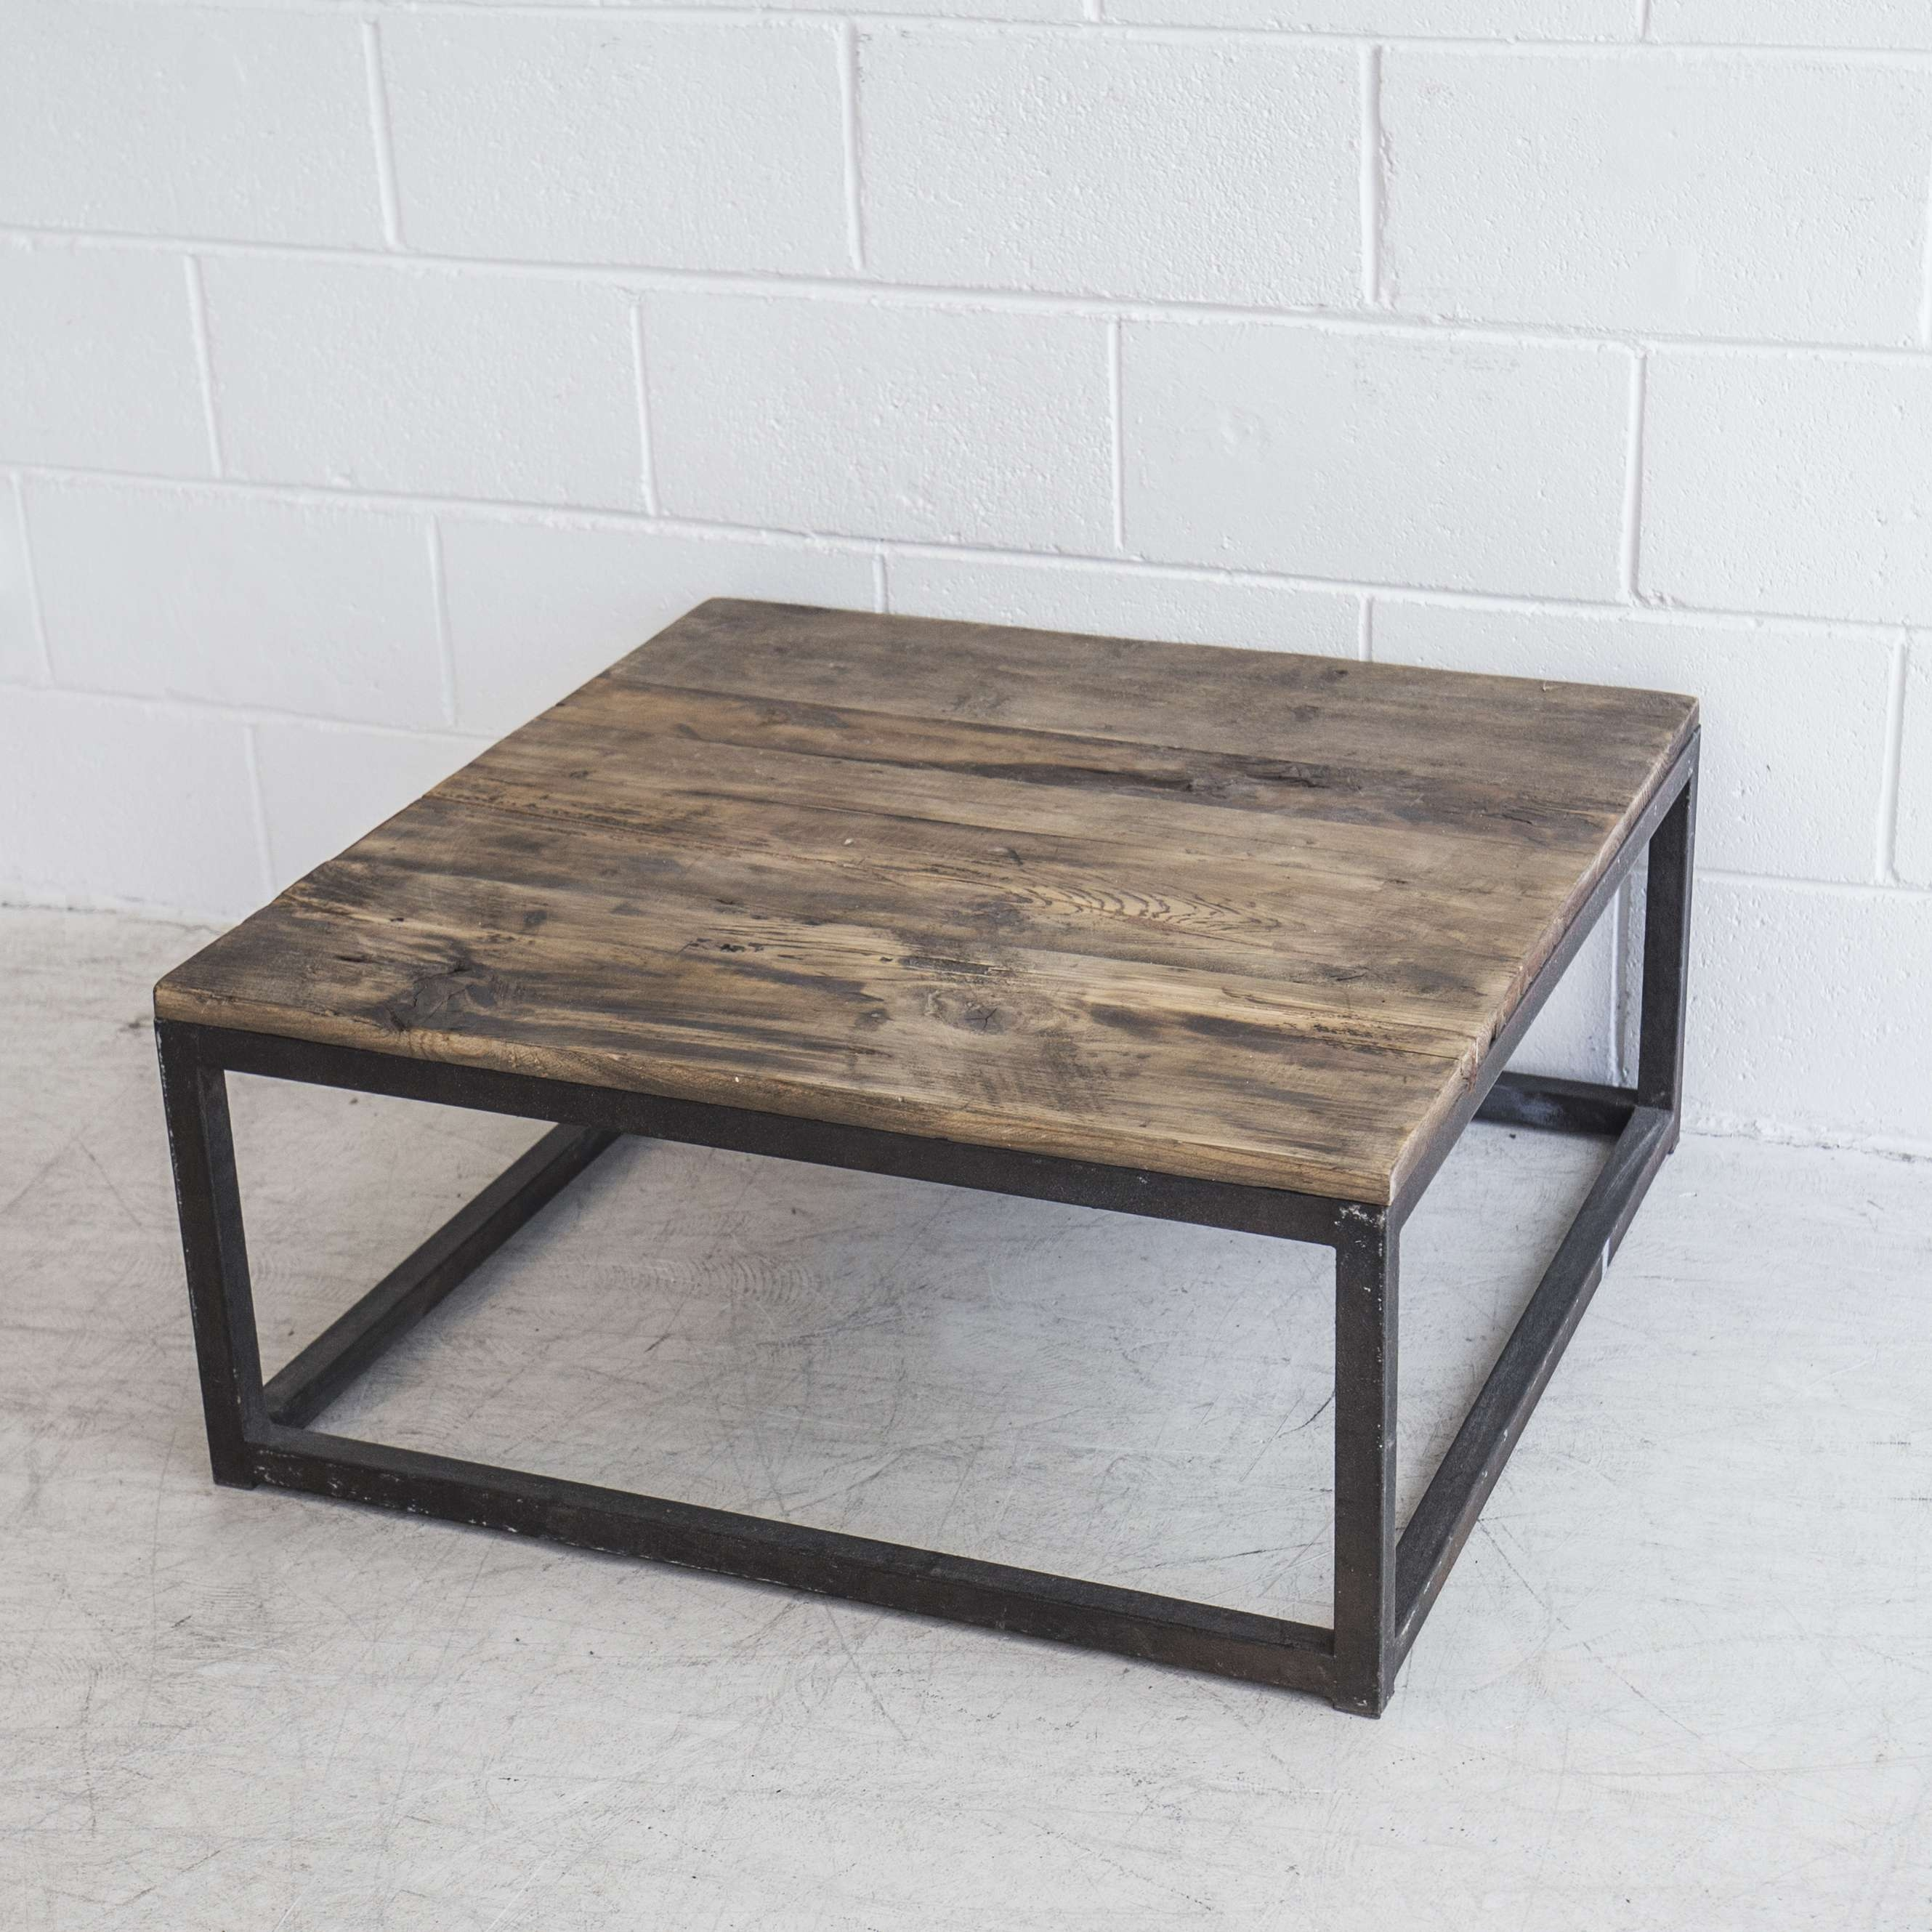 Most Popular Large Low Oak Coffee Tables Regarding Coffee Tables : Large Coffees With Storage Extra For Sale Wheels (View 15 of 20)